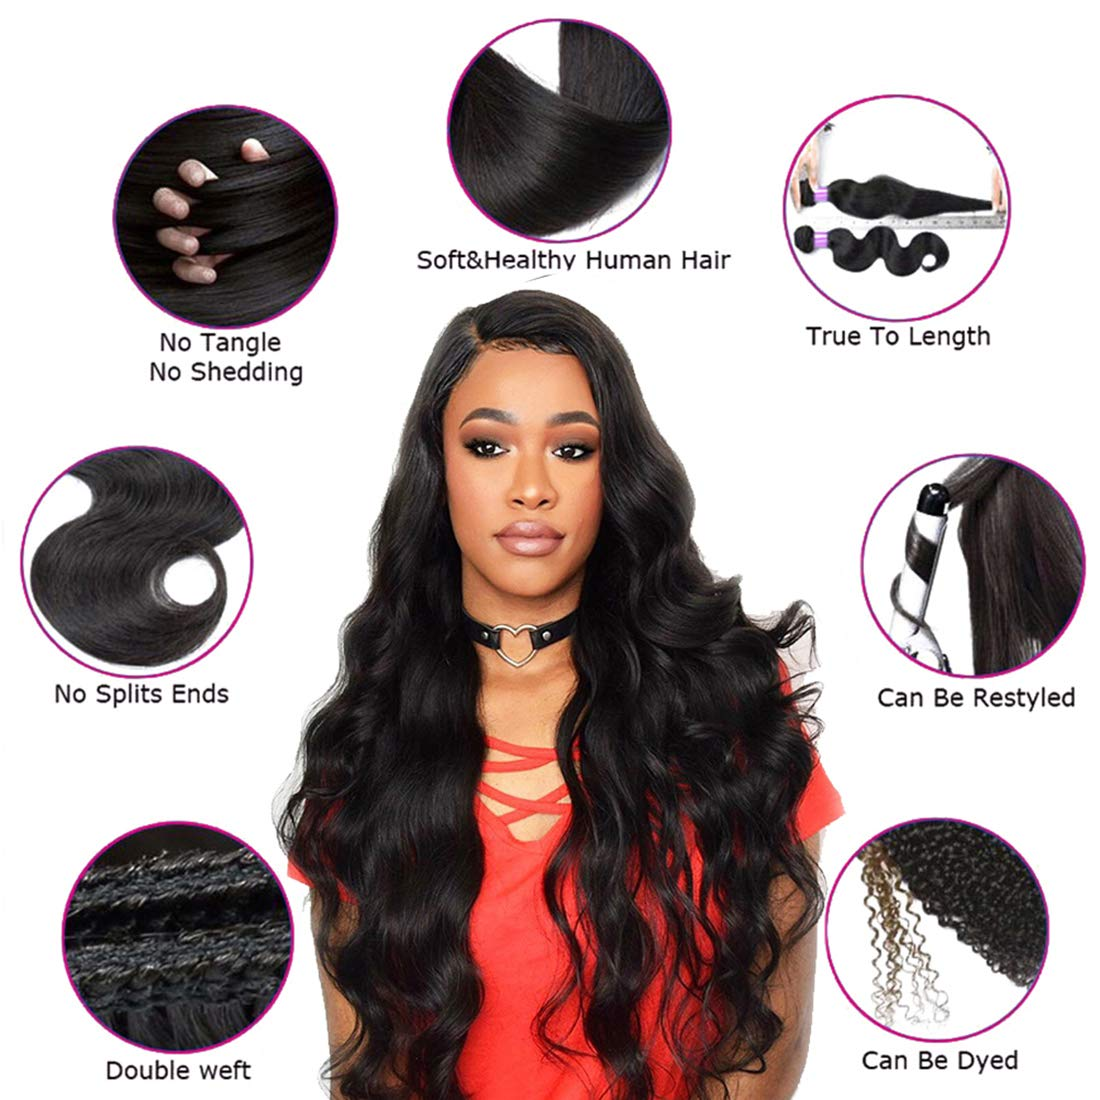 Human Hair Weaves 3/4 Bundles With Closure Practical 3 Bundles Peruvian Afro Kinky Curly With Closure Pre Plucked With Baby Hair Bouncy Curl No Shedding No Tangle Non Remy Black 1b Refreshment